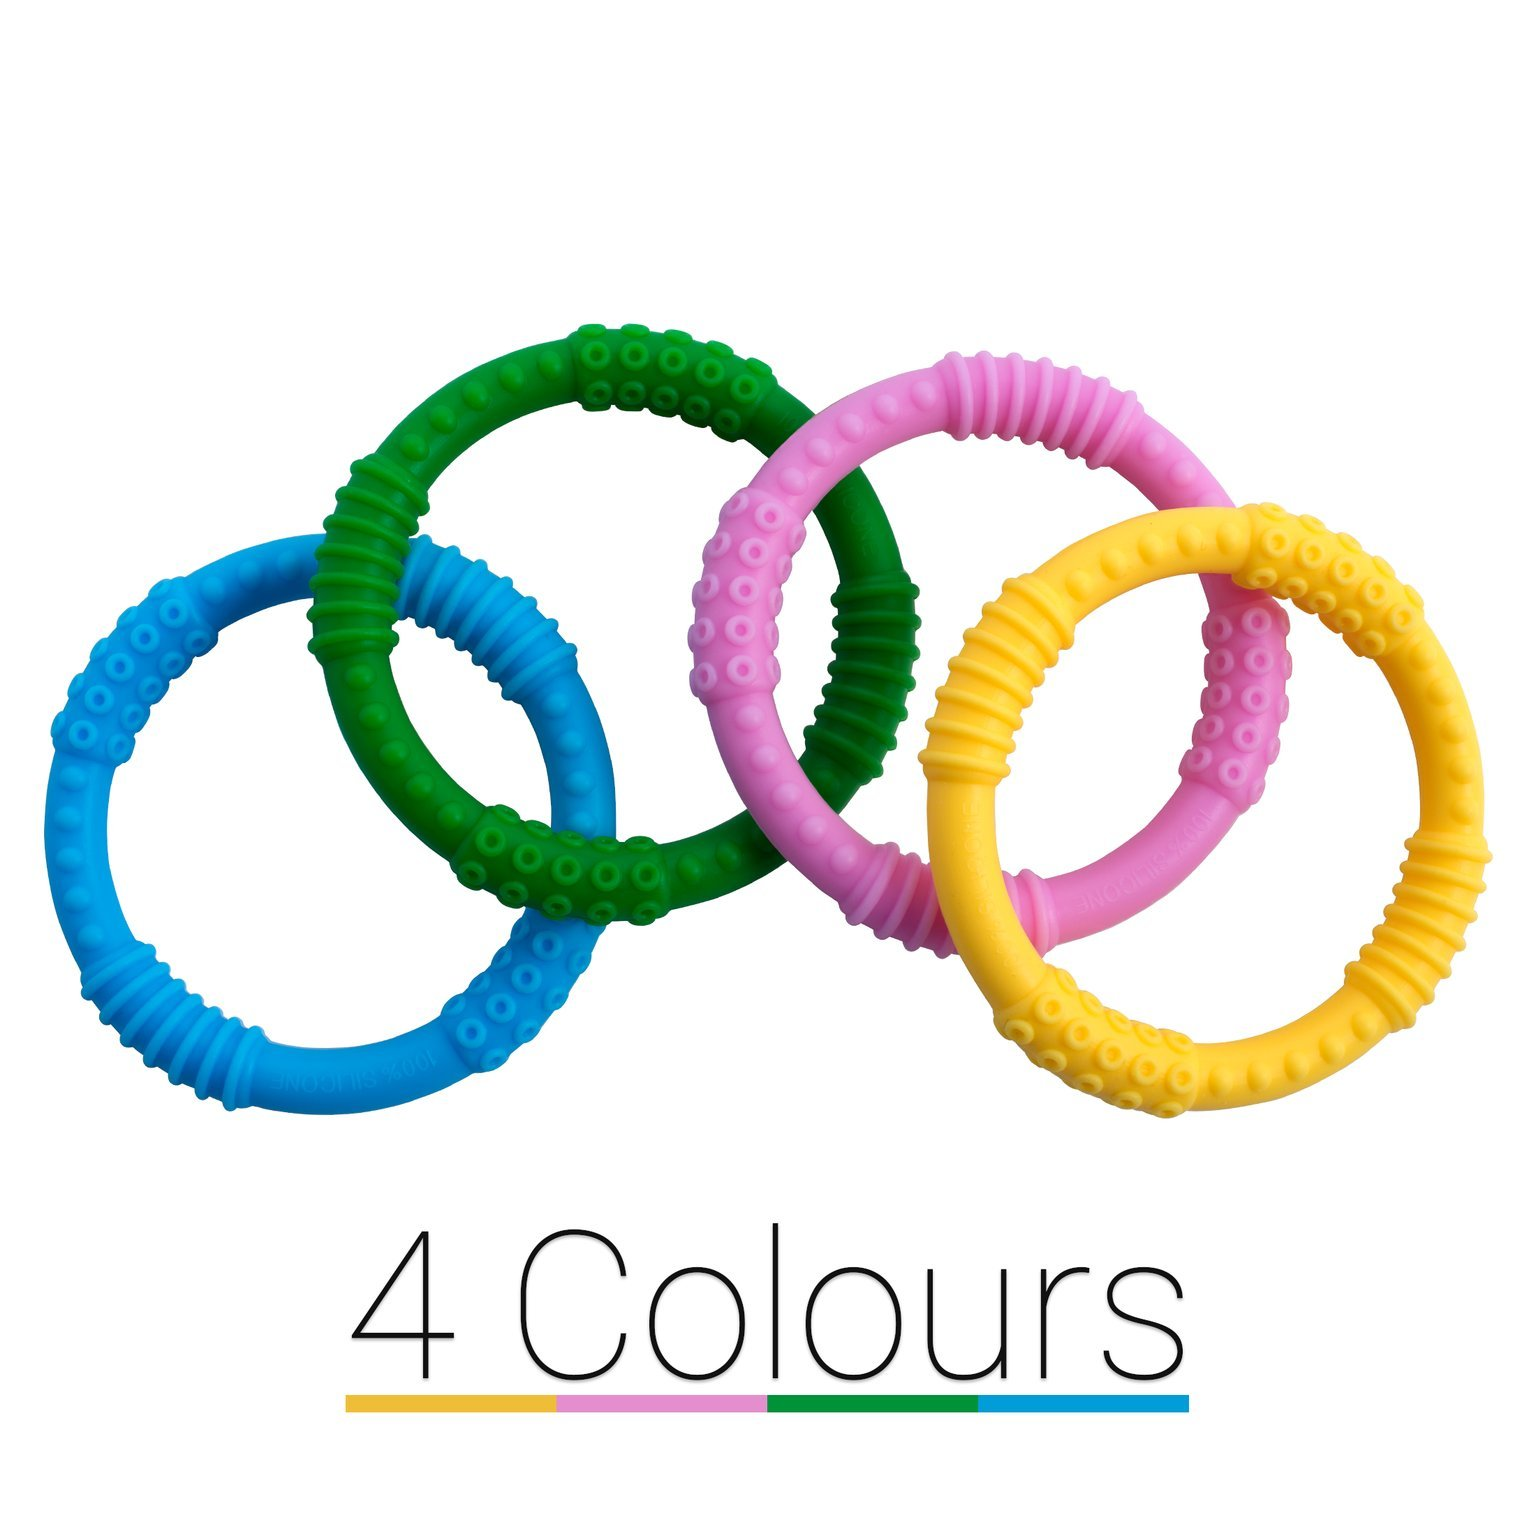 The Original Baby Teether Rings [4 Colors] Soother Infant Teething Toy - Dental Molar Pacifier - BPA Free Babyshower Gift by BABYNOW